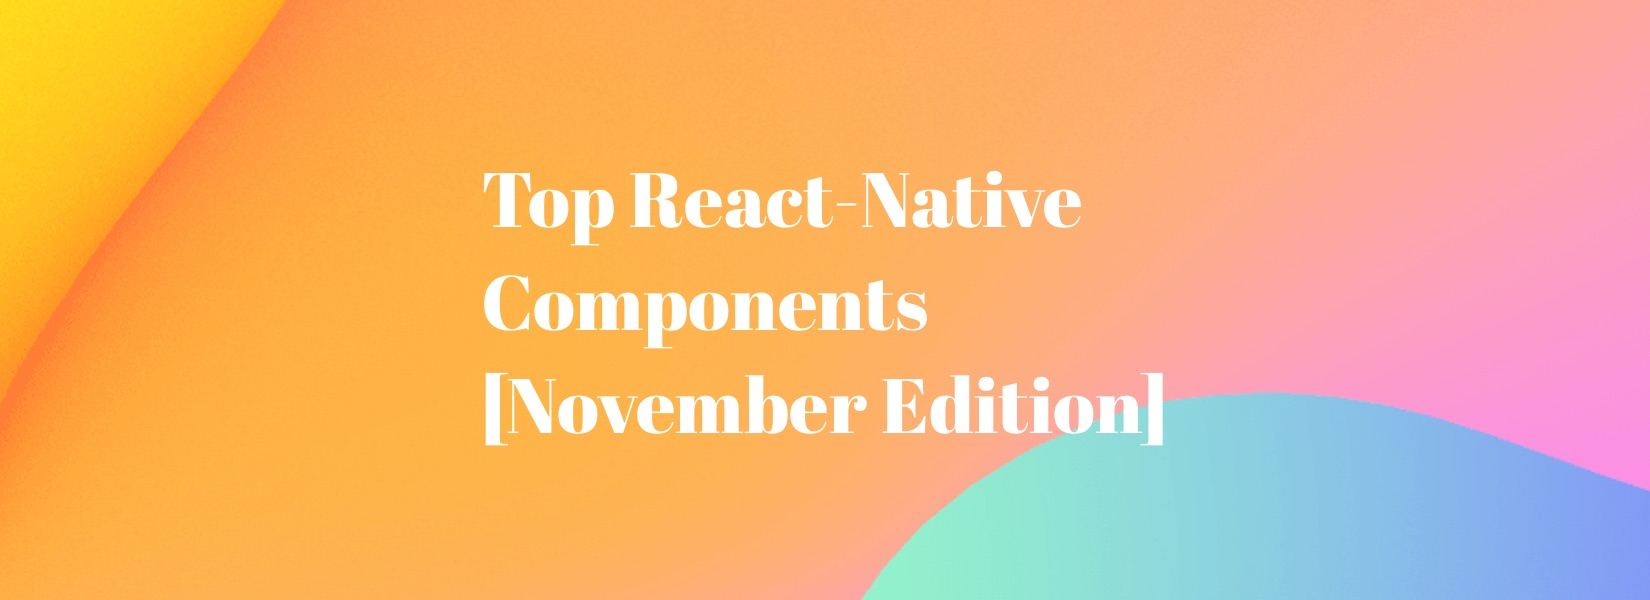 Top React-Native Components (November Edition)